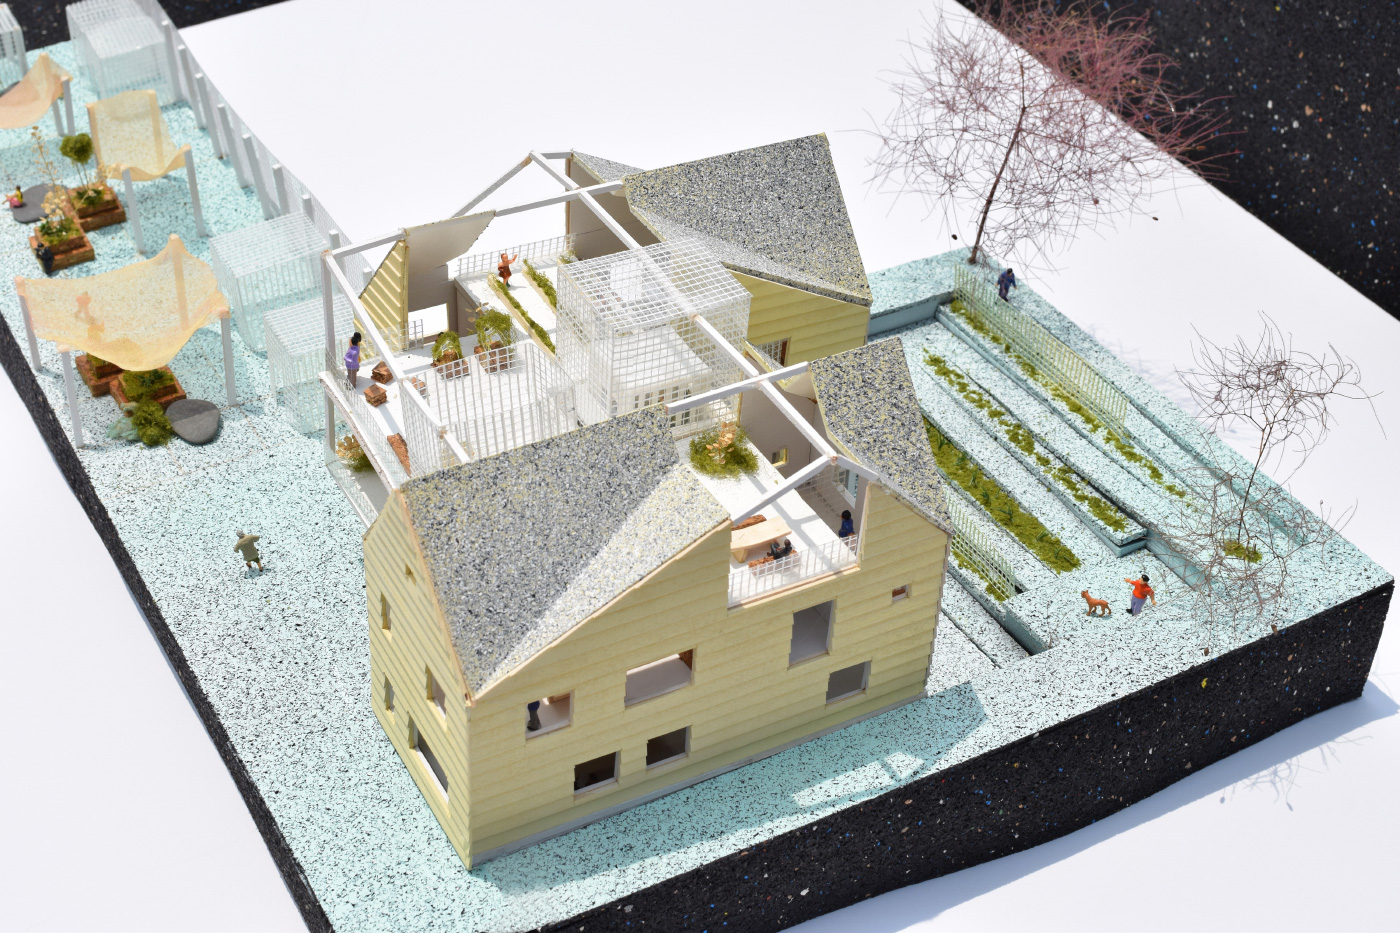 Model of SIDE by SIDE, the winning design for Zero Threshold by BRANDT: HAFERD